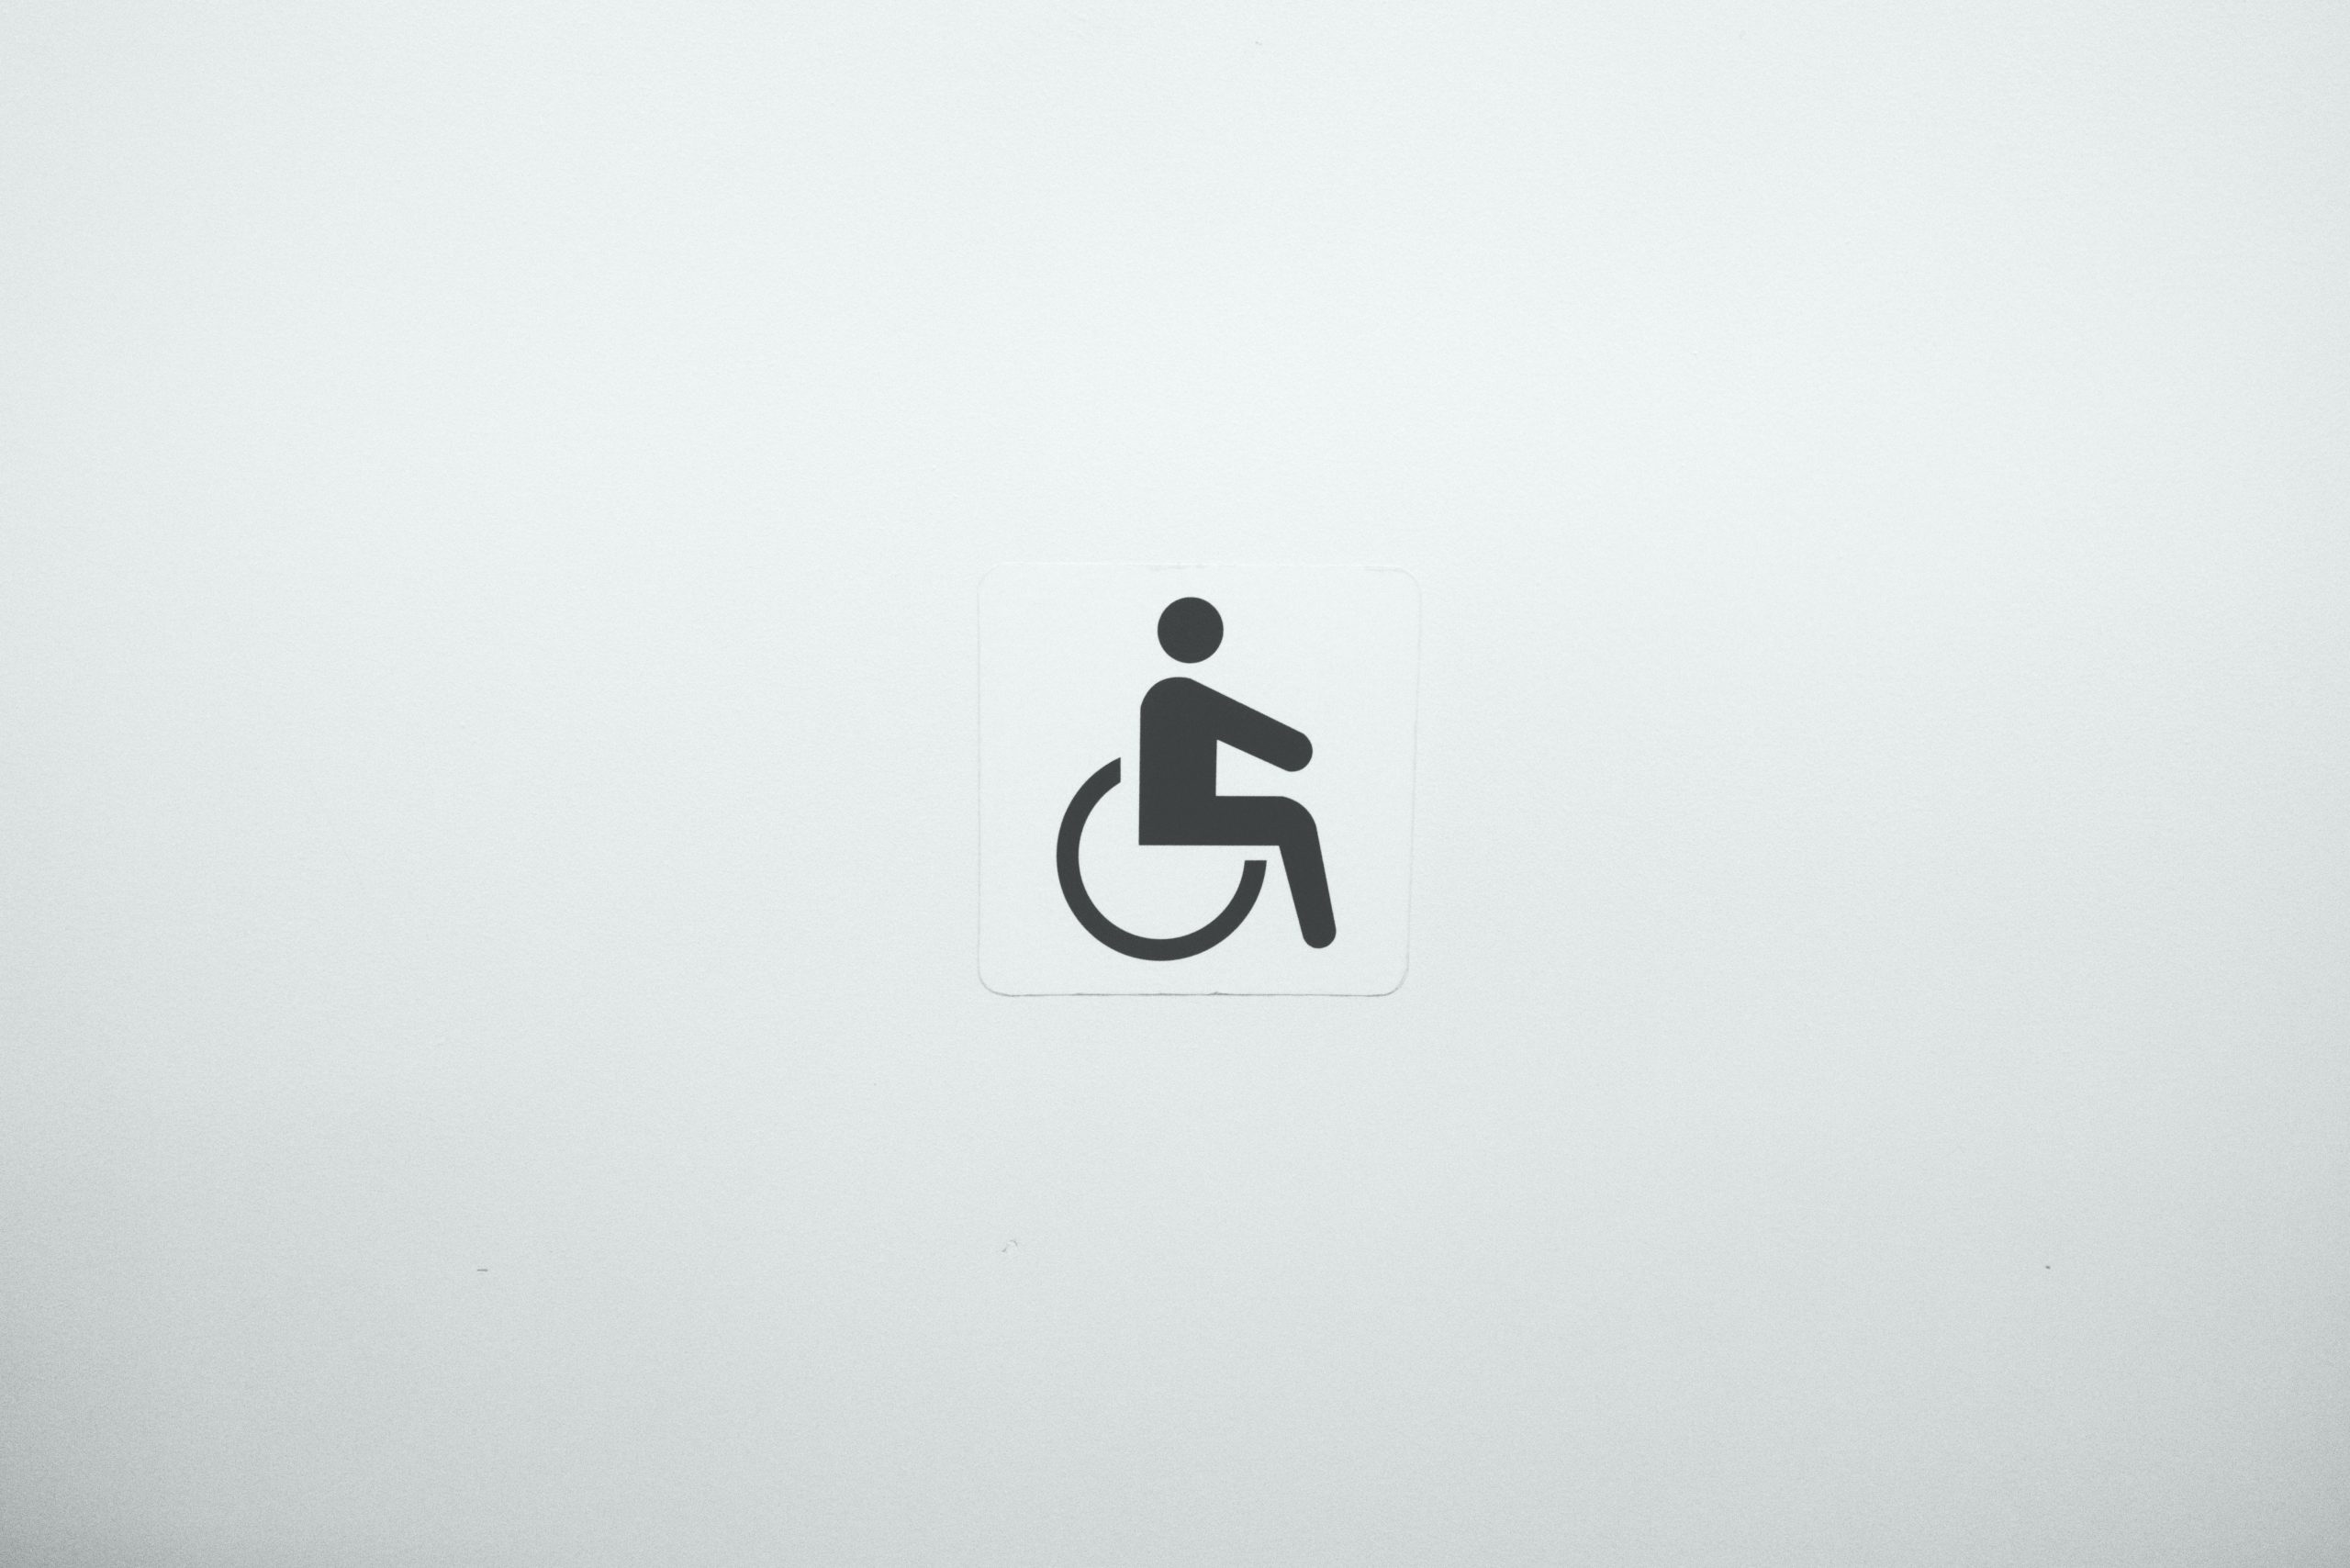 Rouzbeh Pirouz - disabled workers, right to work from home